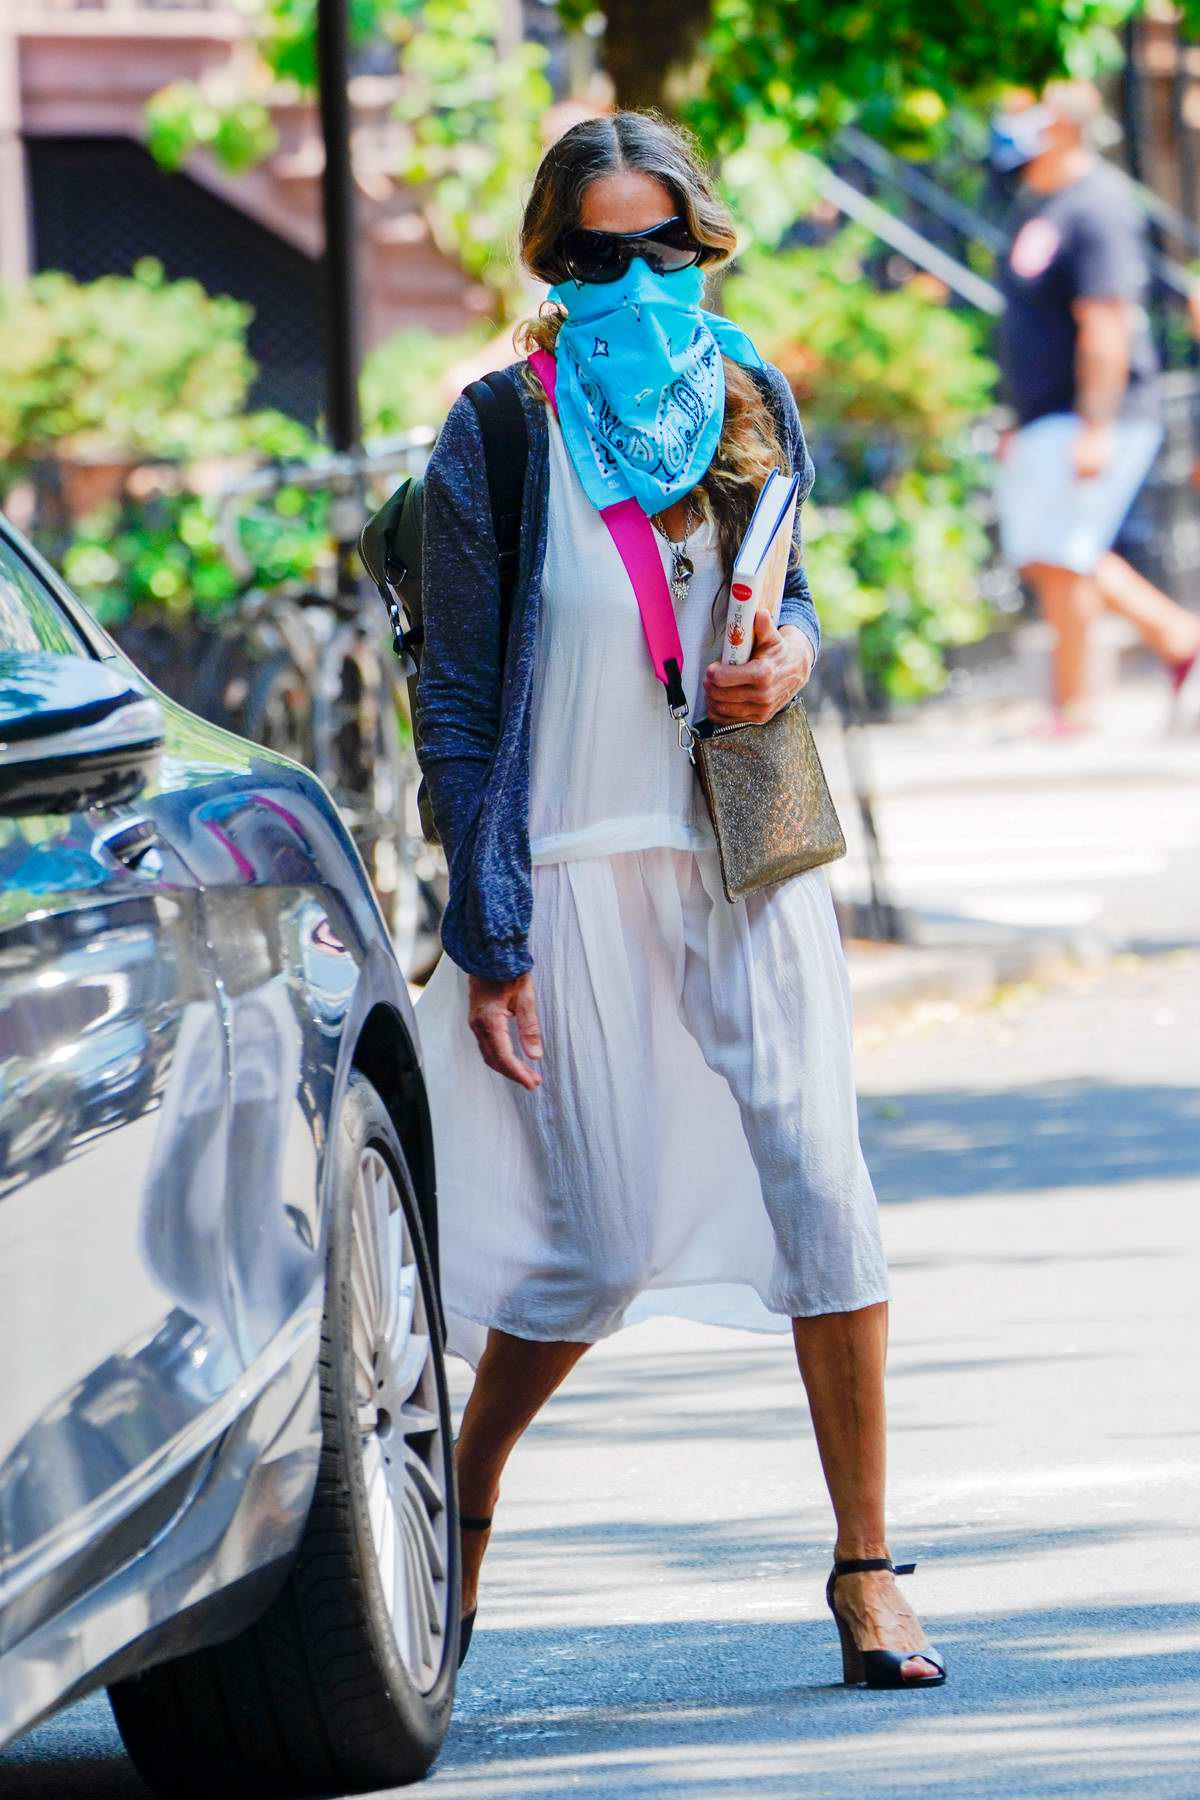 Sarah Jessica Parker seen holding a book as she leaves her house with husband Matthew Broderick in New York City